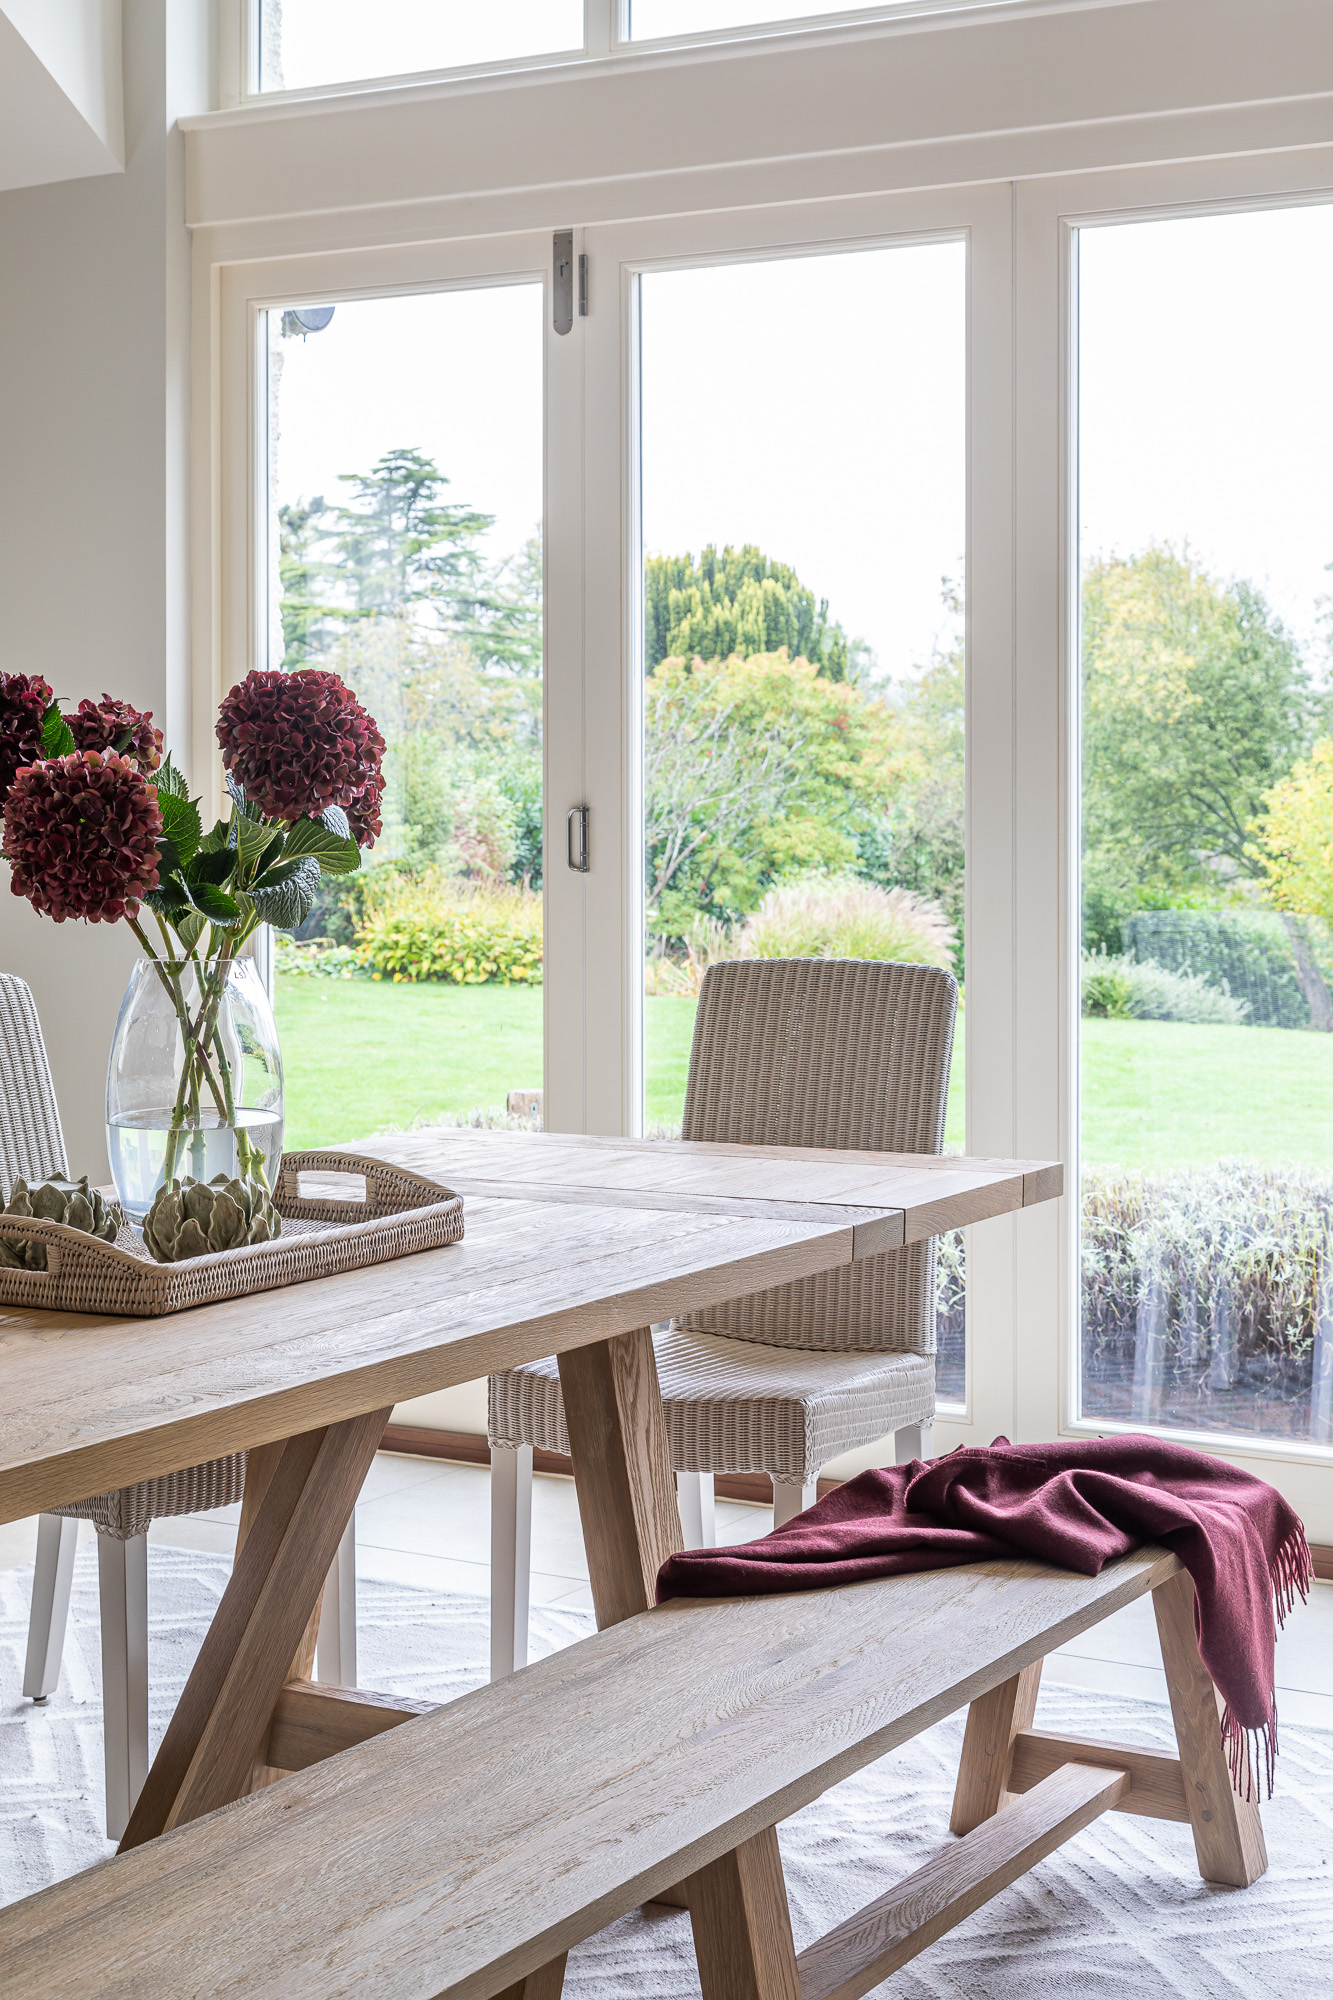 jonathan bond, interior photographer, garden view from dining room, great missenden, buckinghamshire